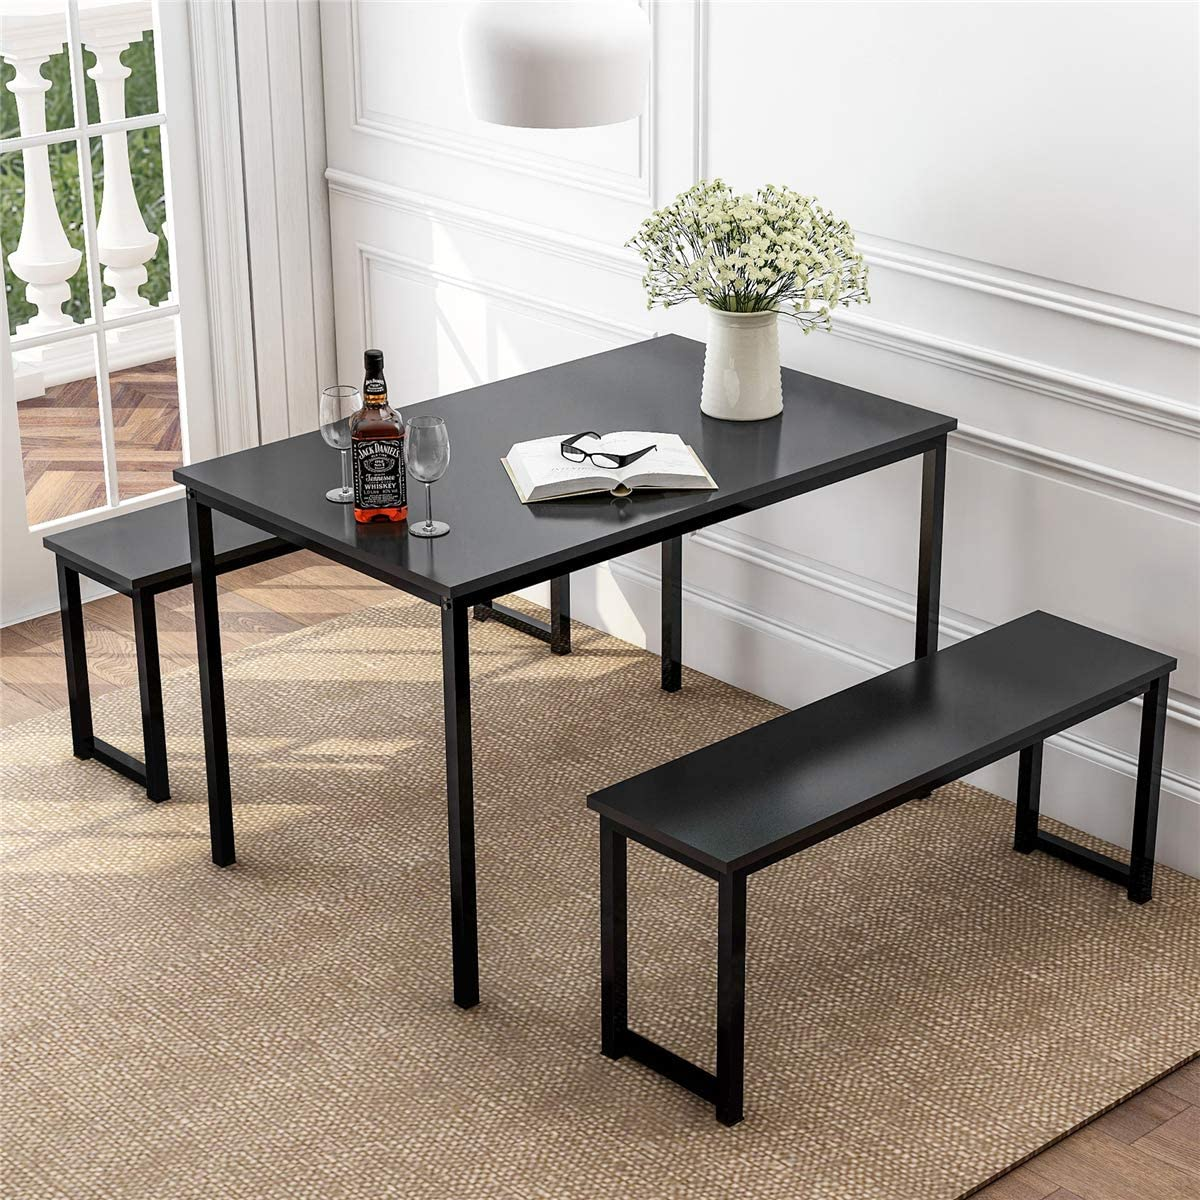 DANGRUUT Modern Table Max 64% OFF Set with favorite Bench Style Simple 3 Piece Kitch